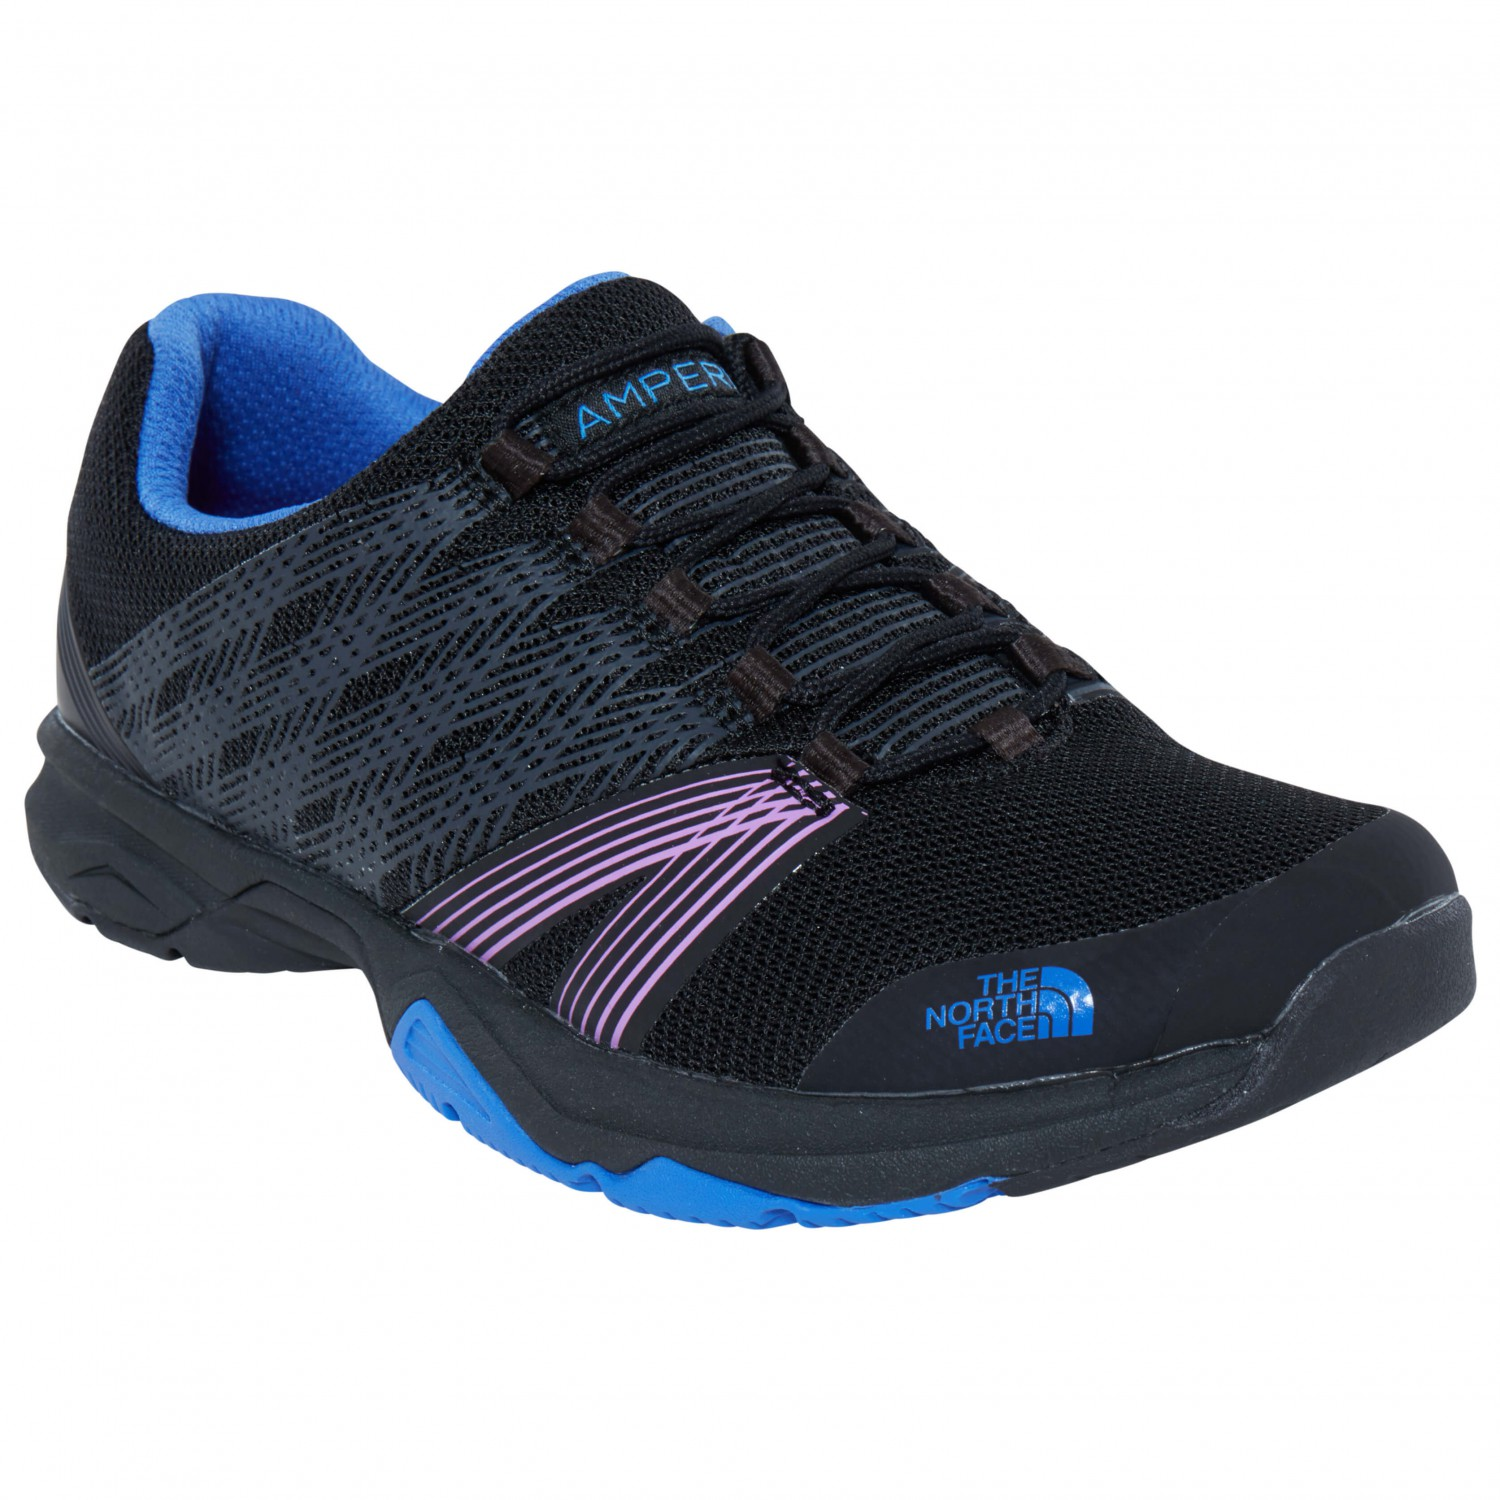 The North Face Litewave Ampere II Fitnessschuh